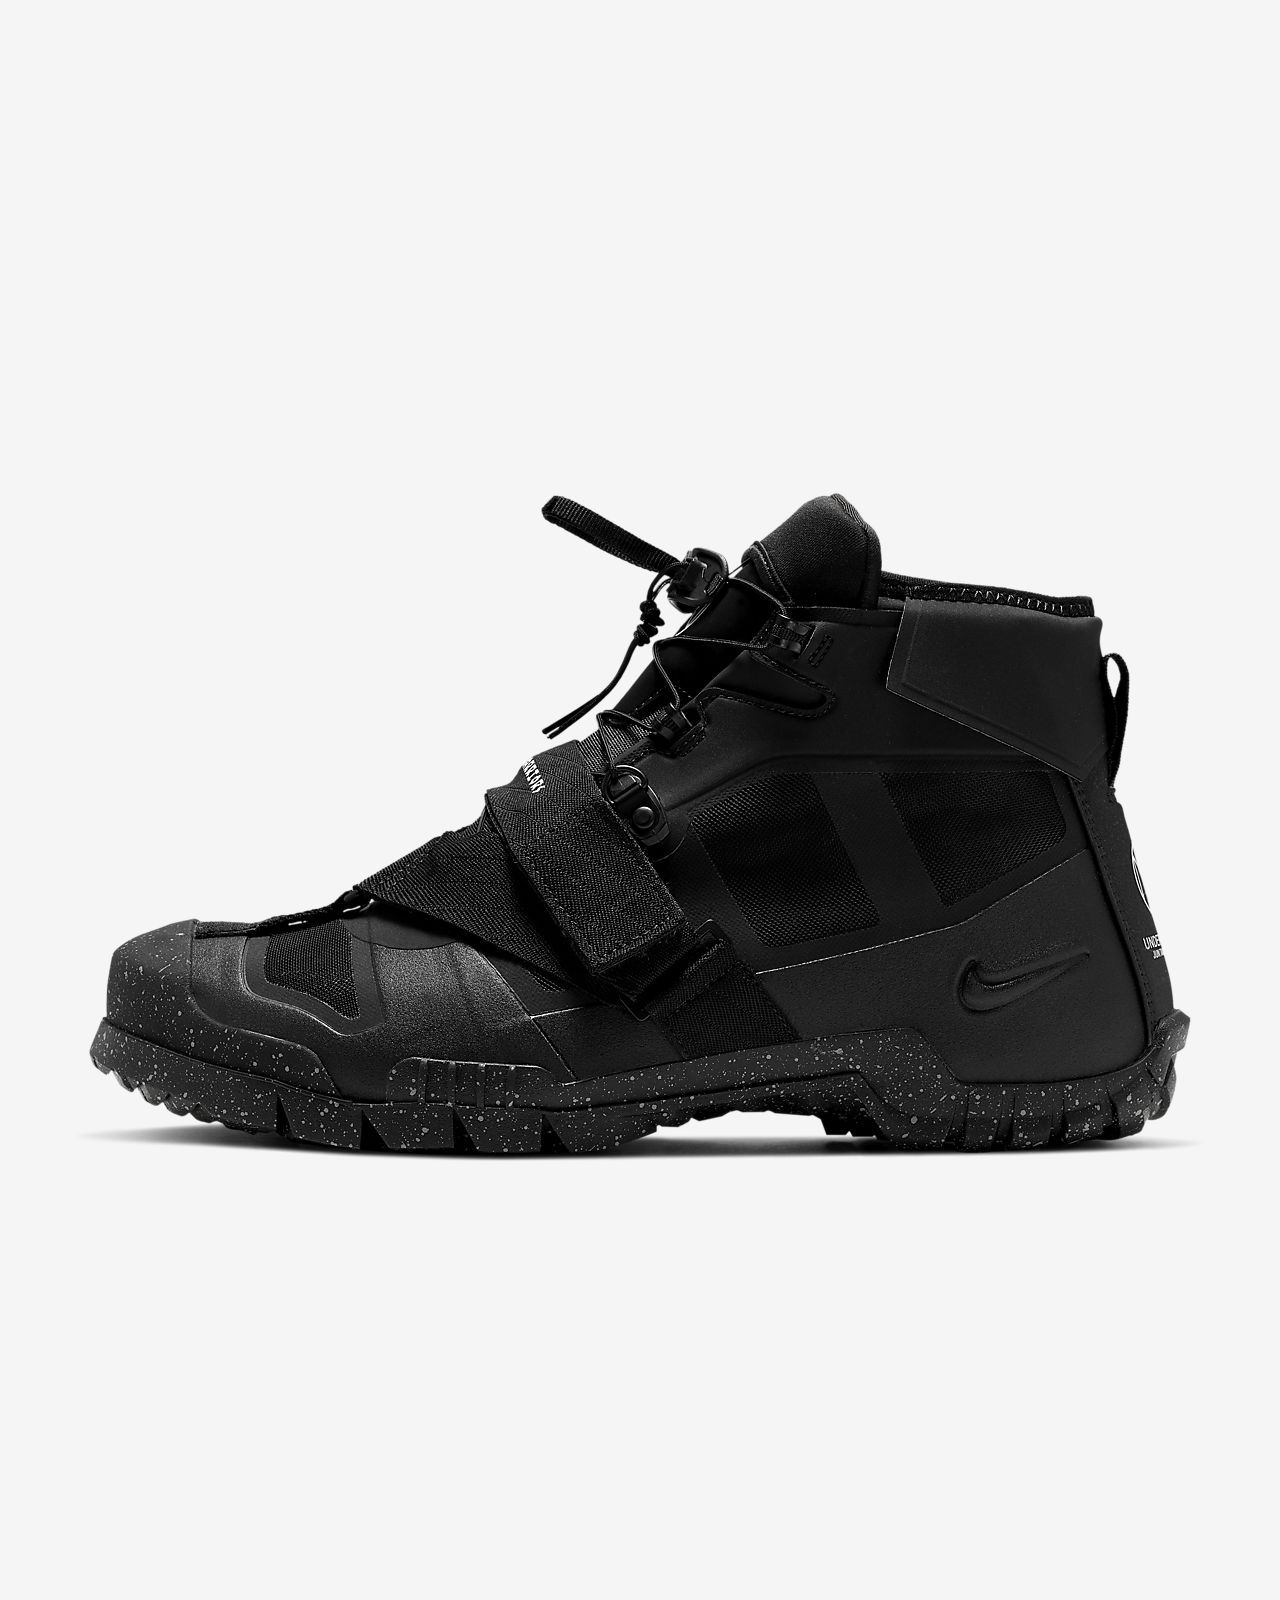 Nike x Undercover SFB Mountain Men's Boot | Boots men, Mens ...